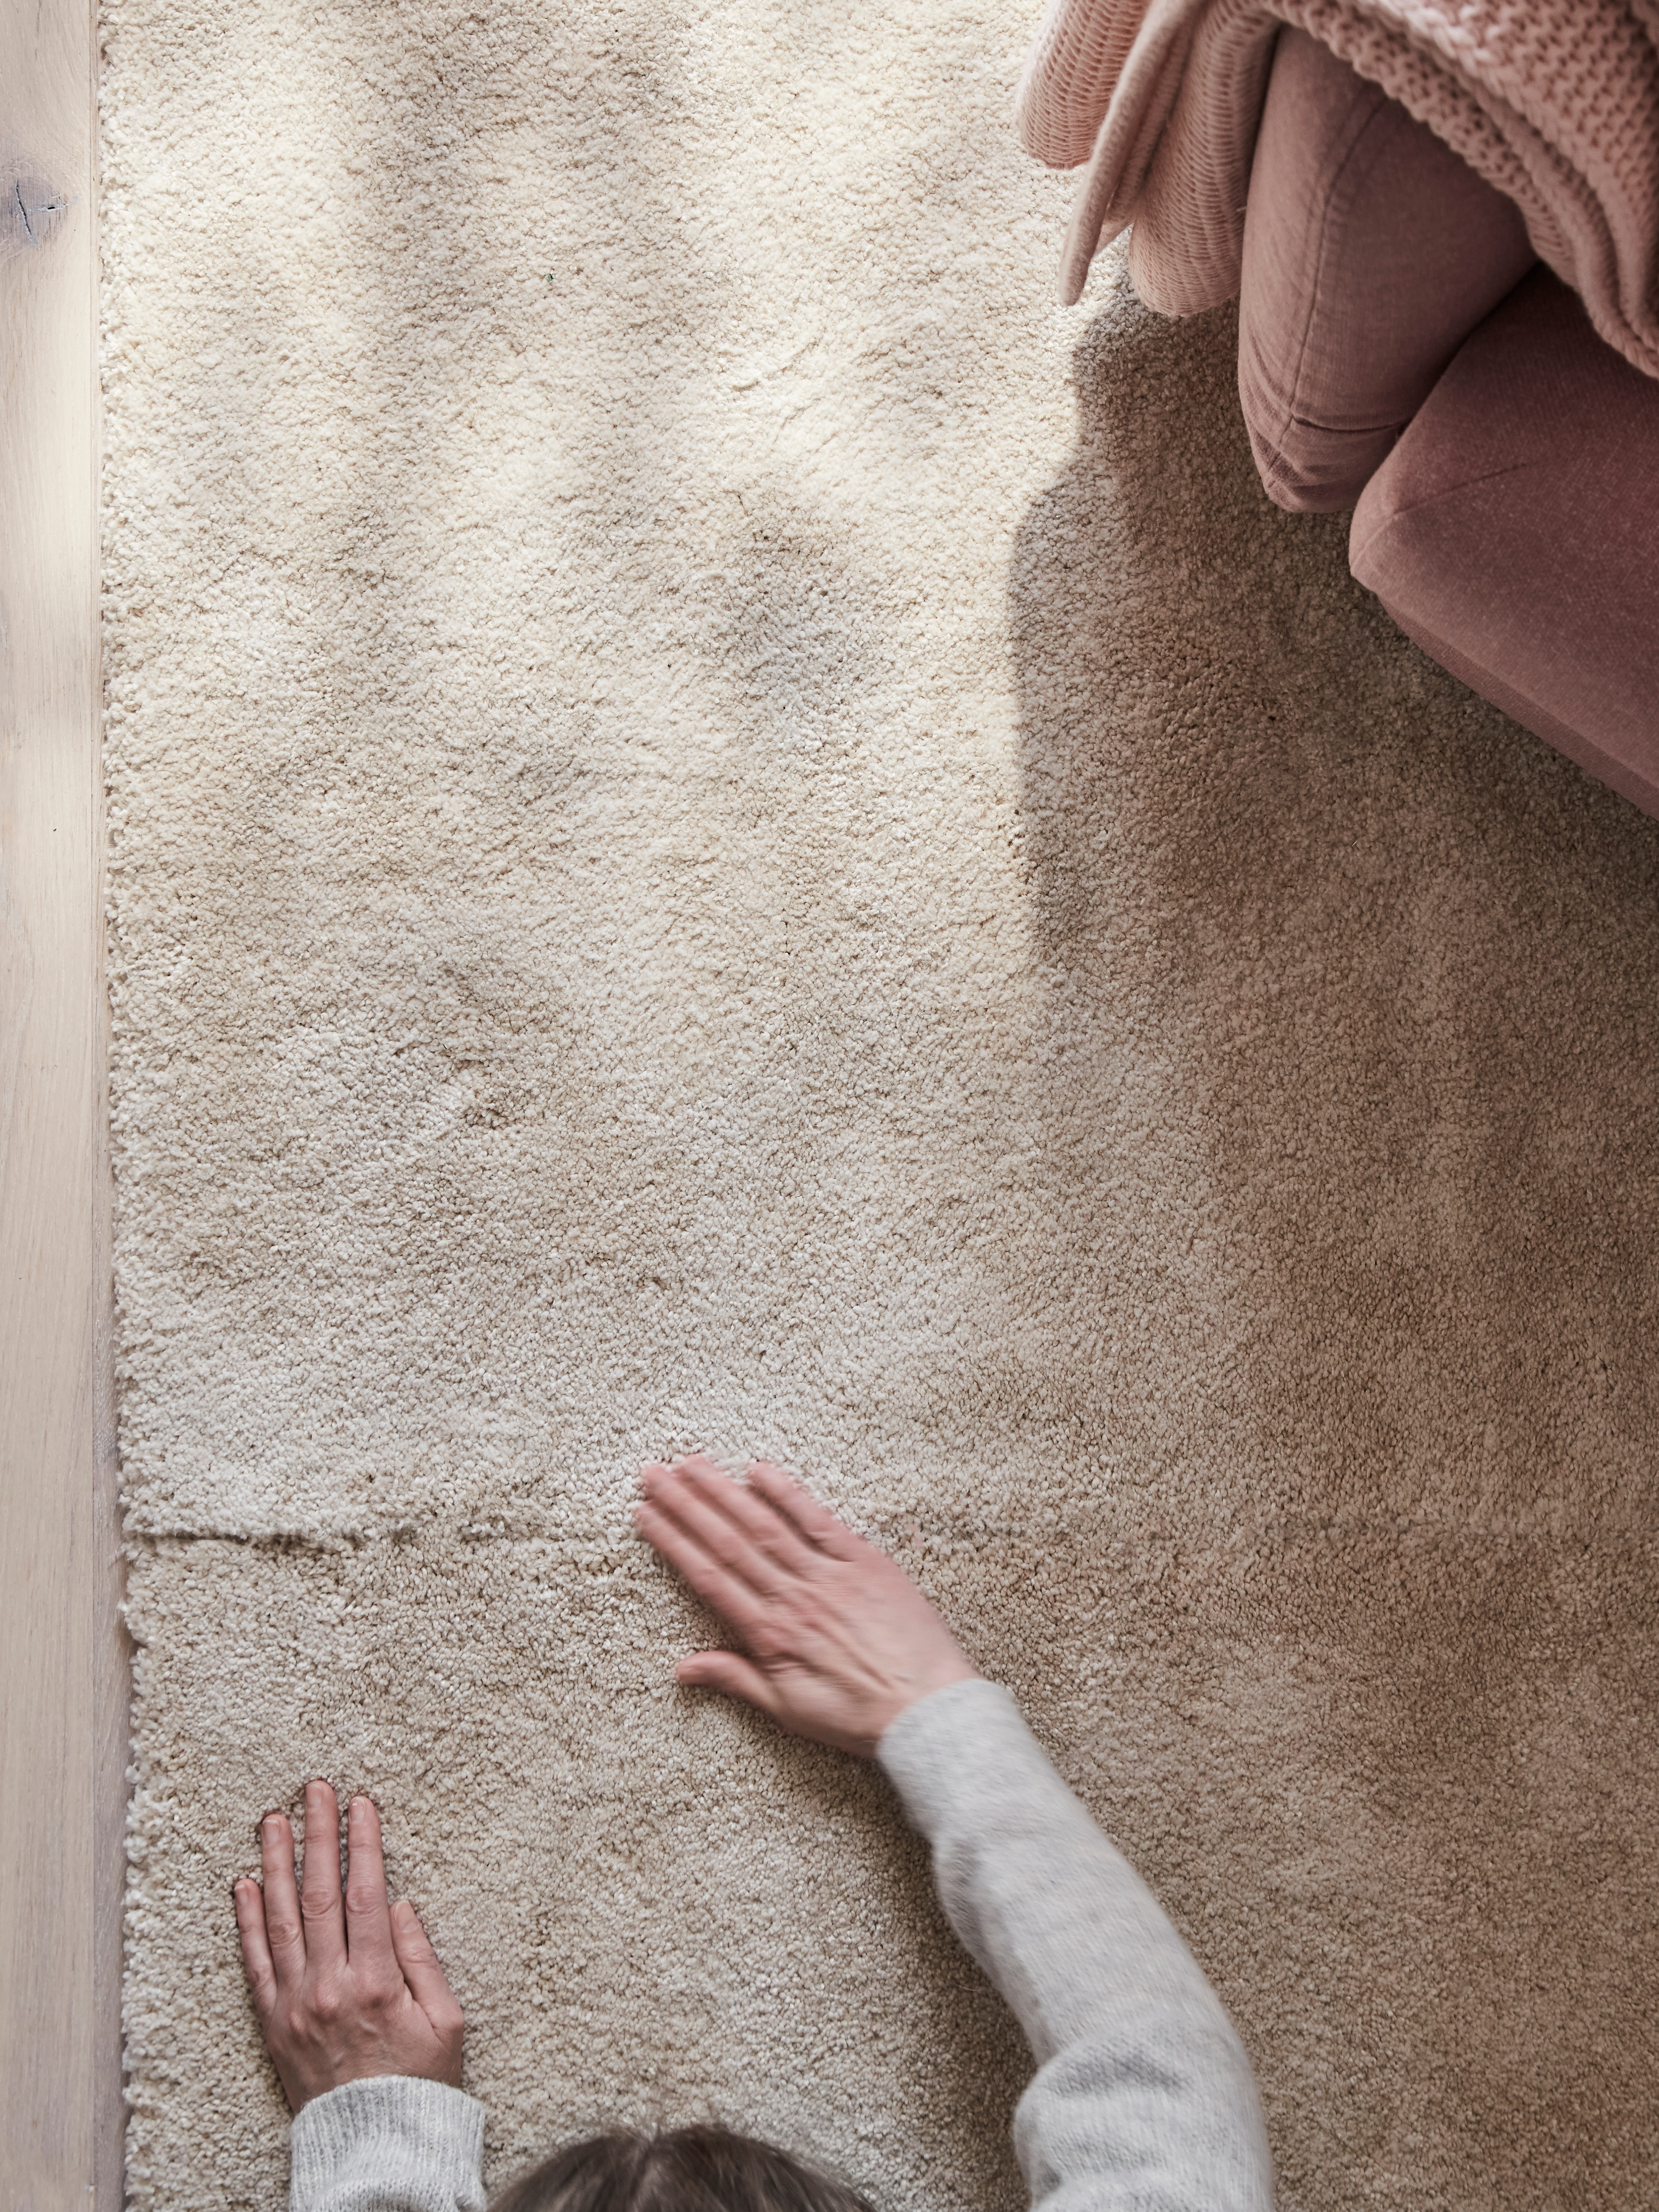 An aerial view of a person adjusting two, rectangular STOENSE low pile rugs in off-white by a partially visible armchair.